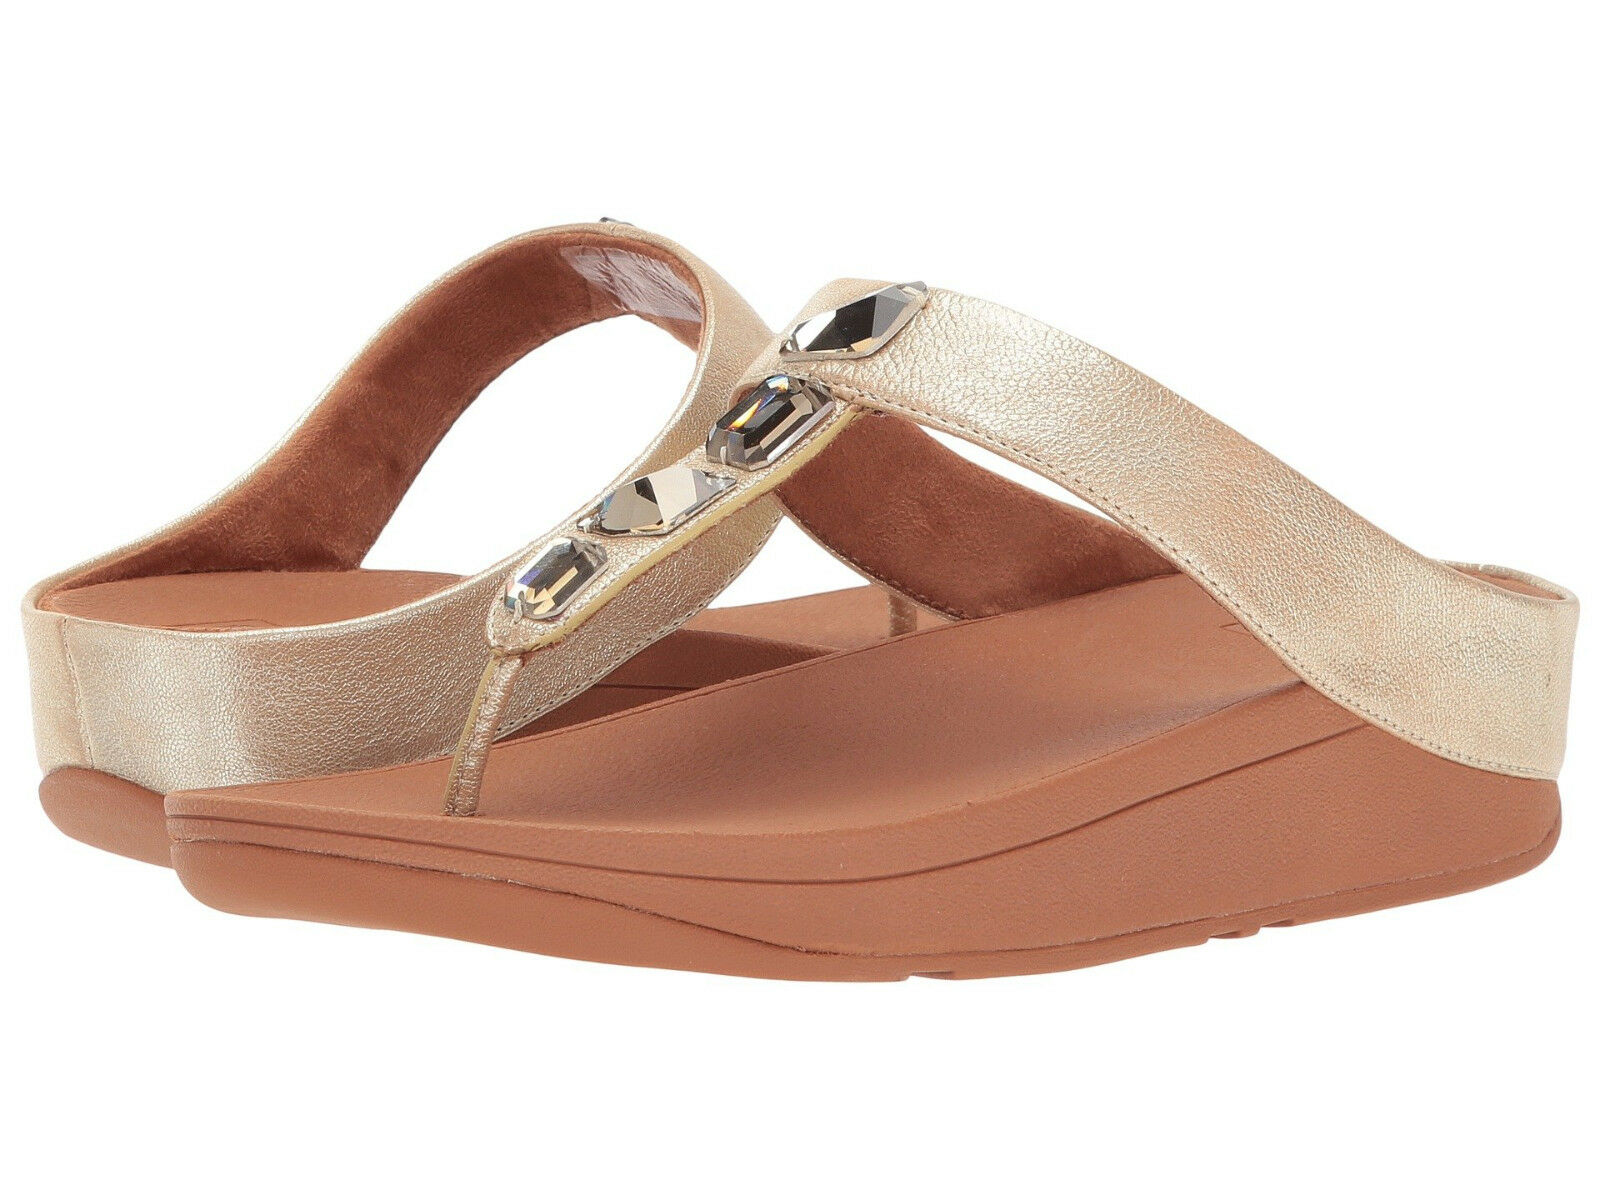 Damens FitFlop Gold Roka Toe Thong Sandale Leder K05-010 Gold FitFlop 100% Authentic New ecff4b